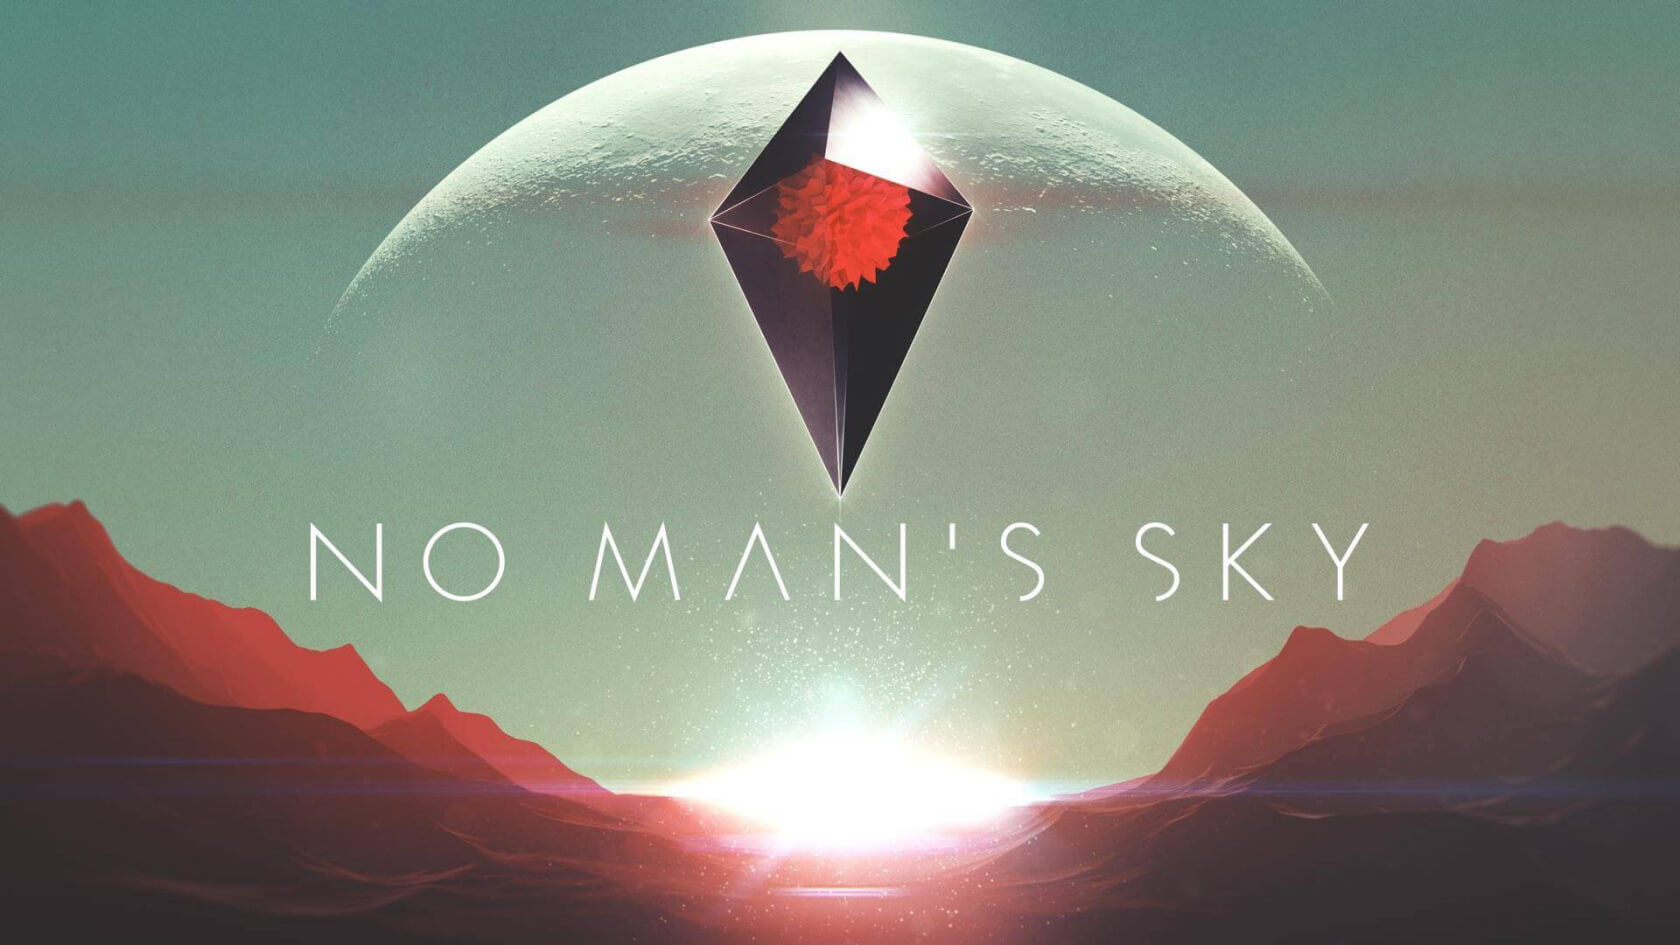 No Man's Sky: Atlas Rises update 1.3 adds 30 hours of story, multiplayer and more